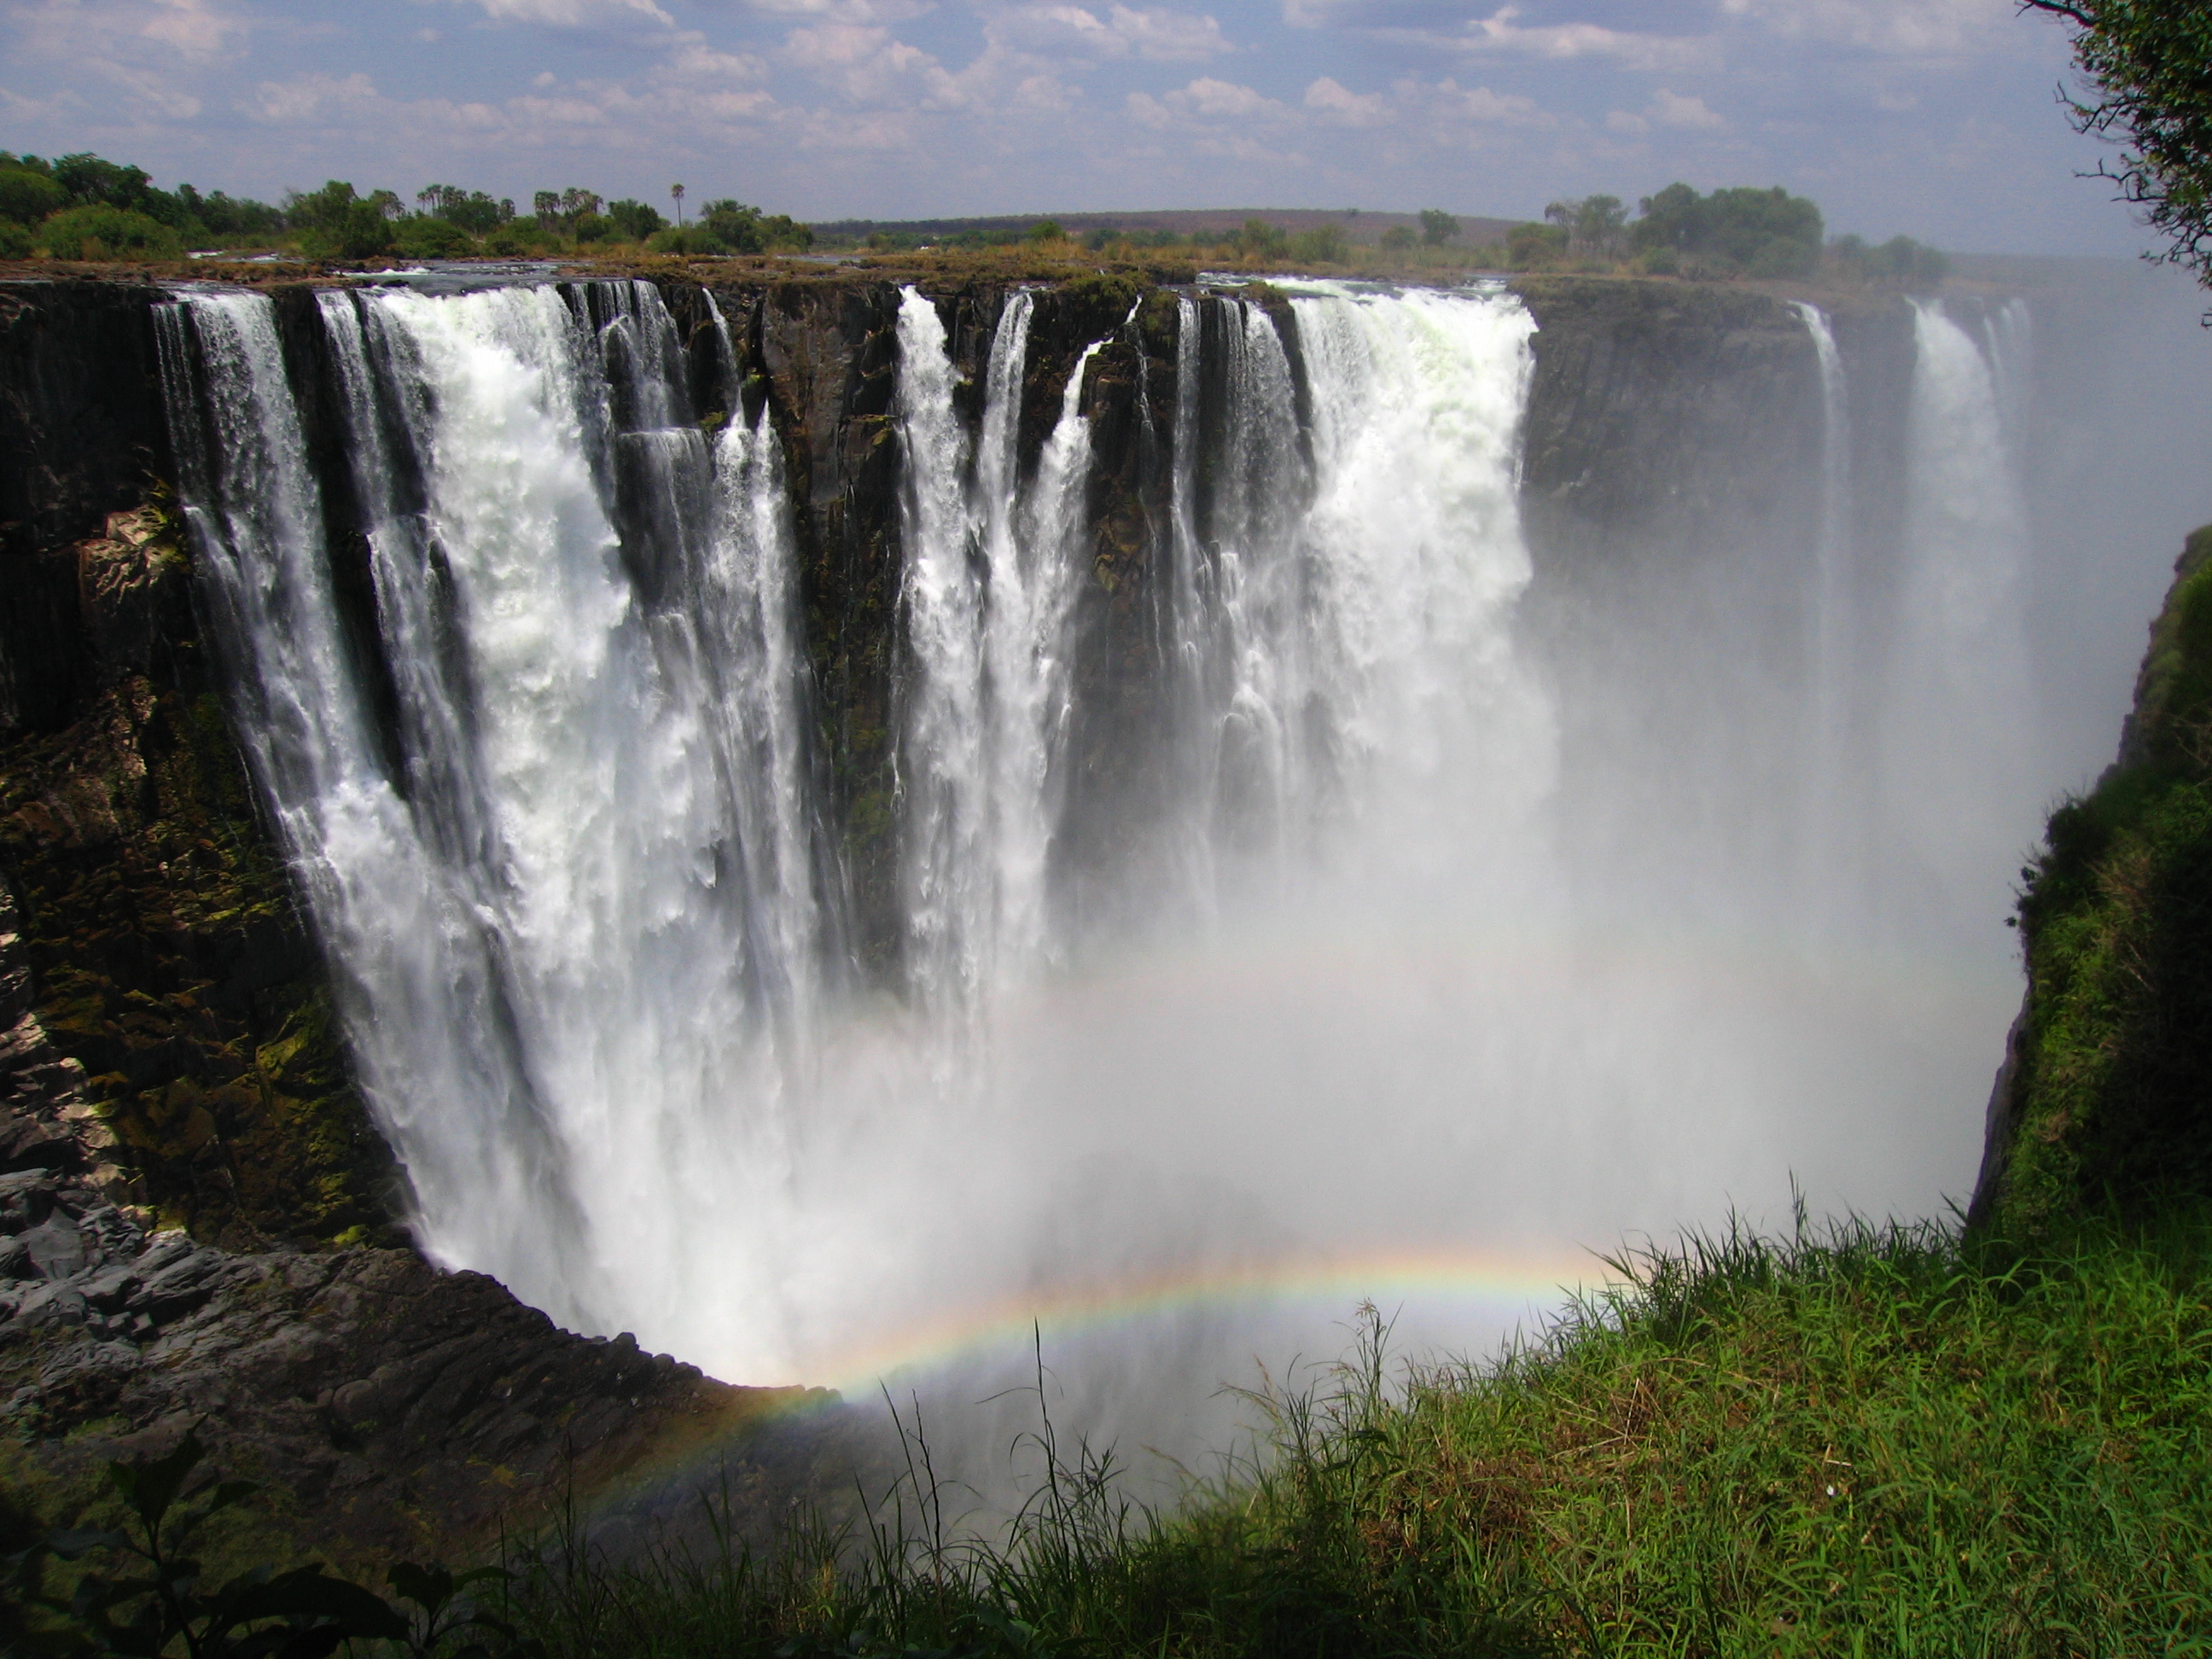 ... Falls - Taken 6-Nov-2005 at the border between Zambia and Zimbabwe